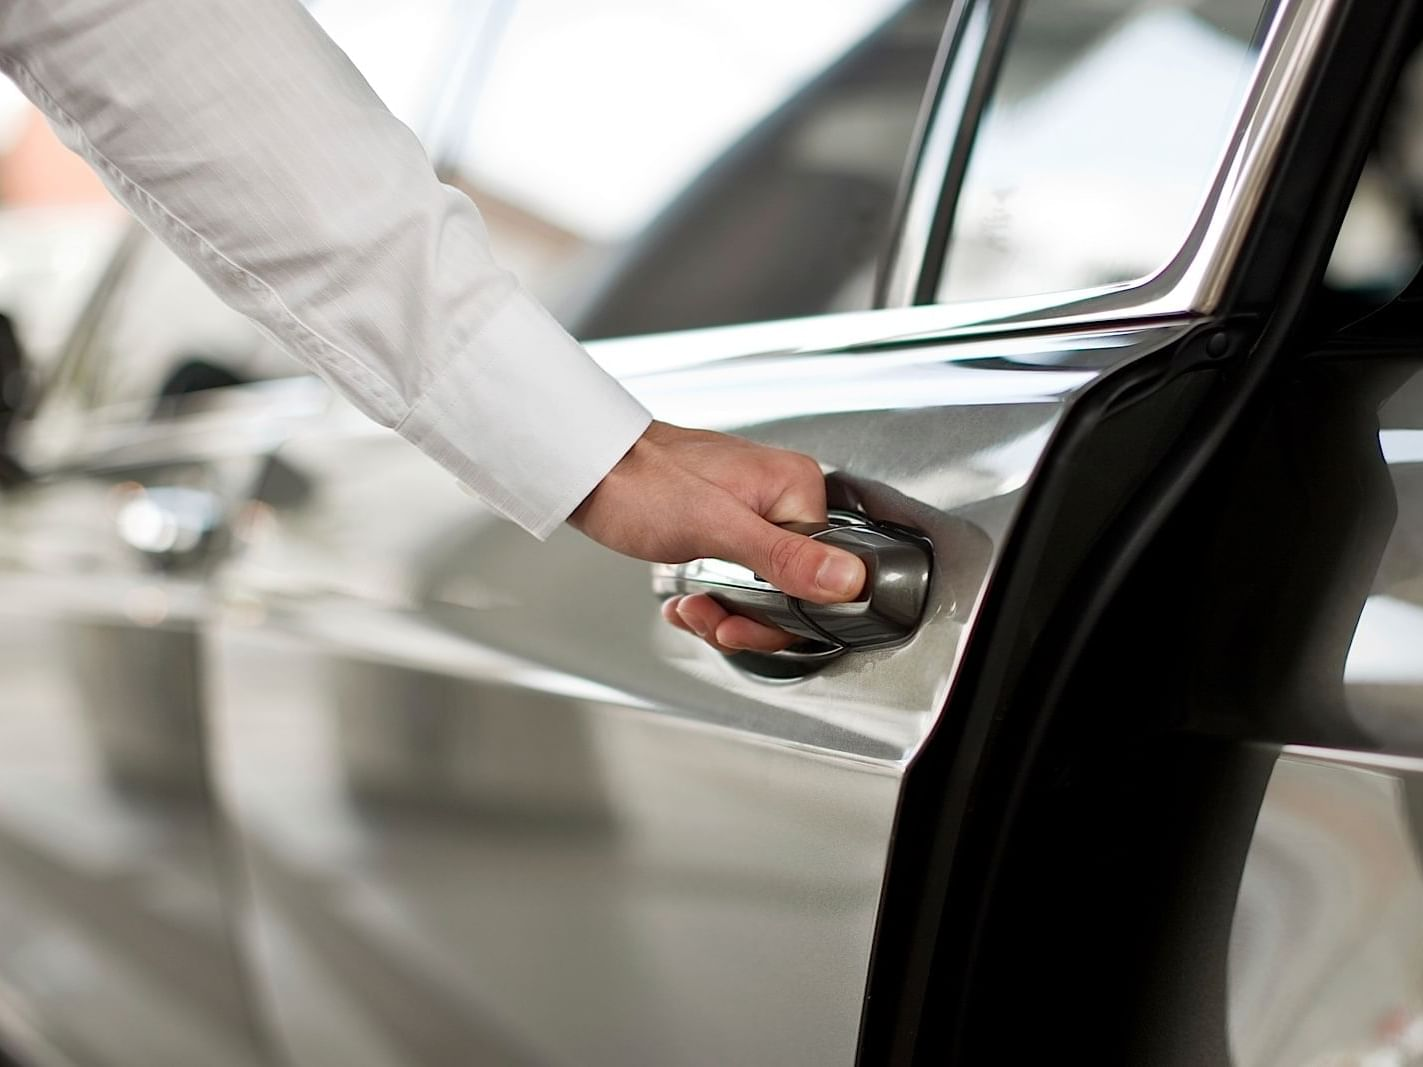 Close-up of hand holding car door handle at Dream Hollywood LA